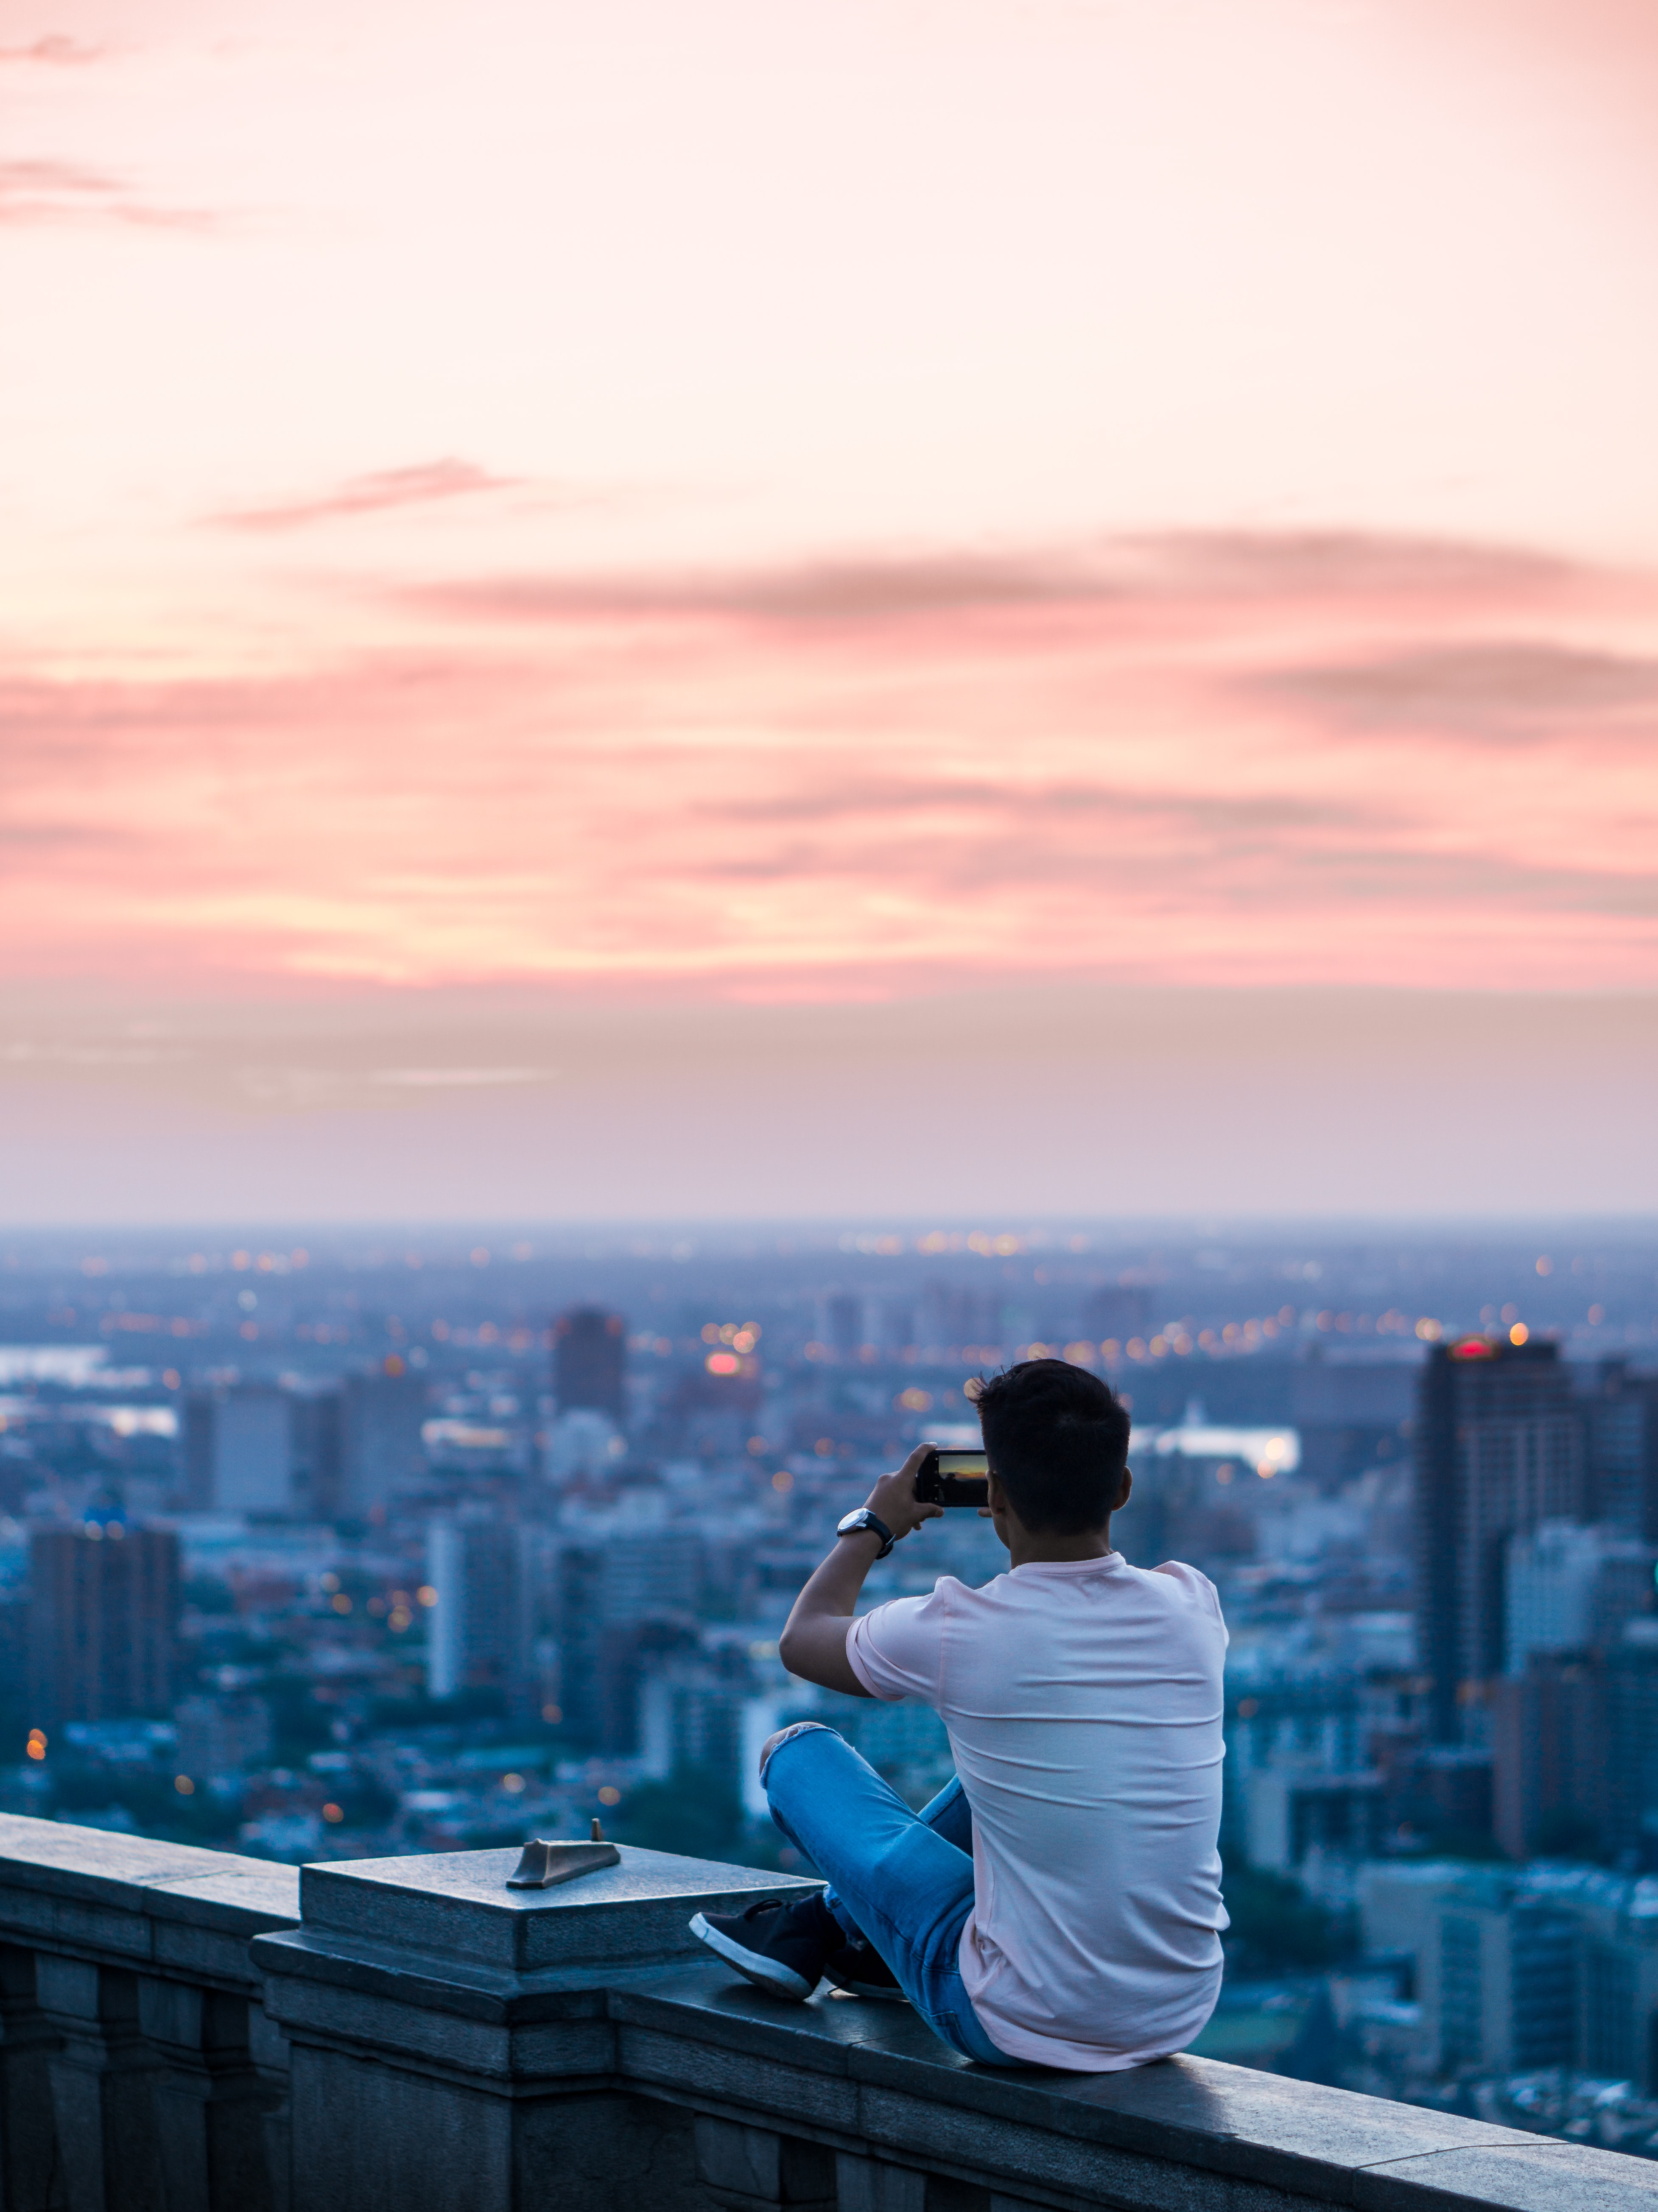 A male photographer taking a picture of the city skyline.